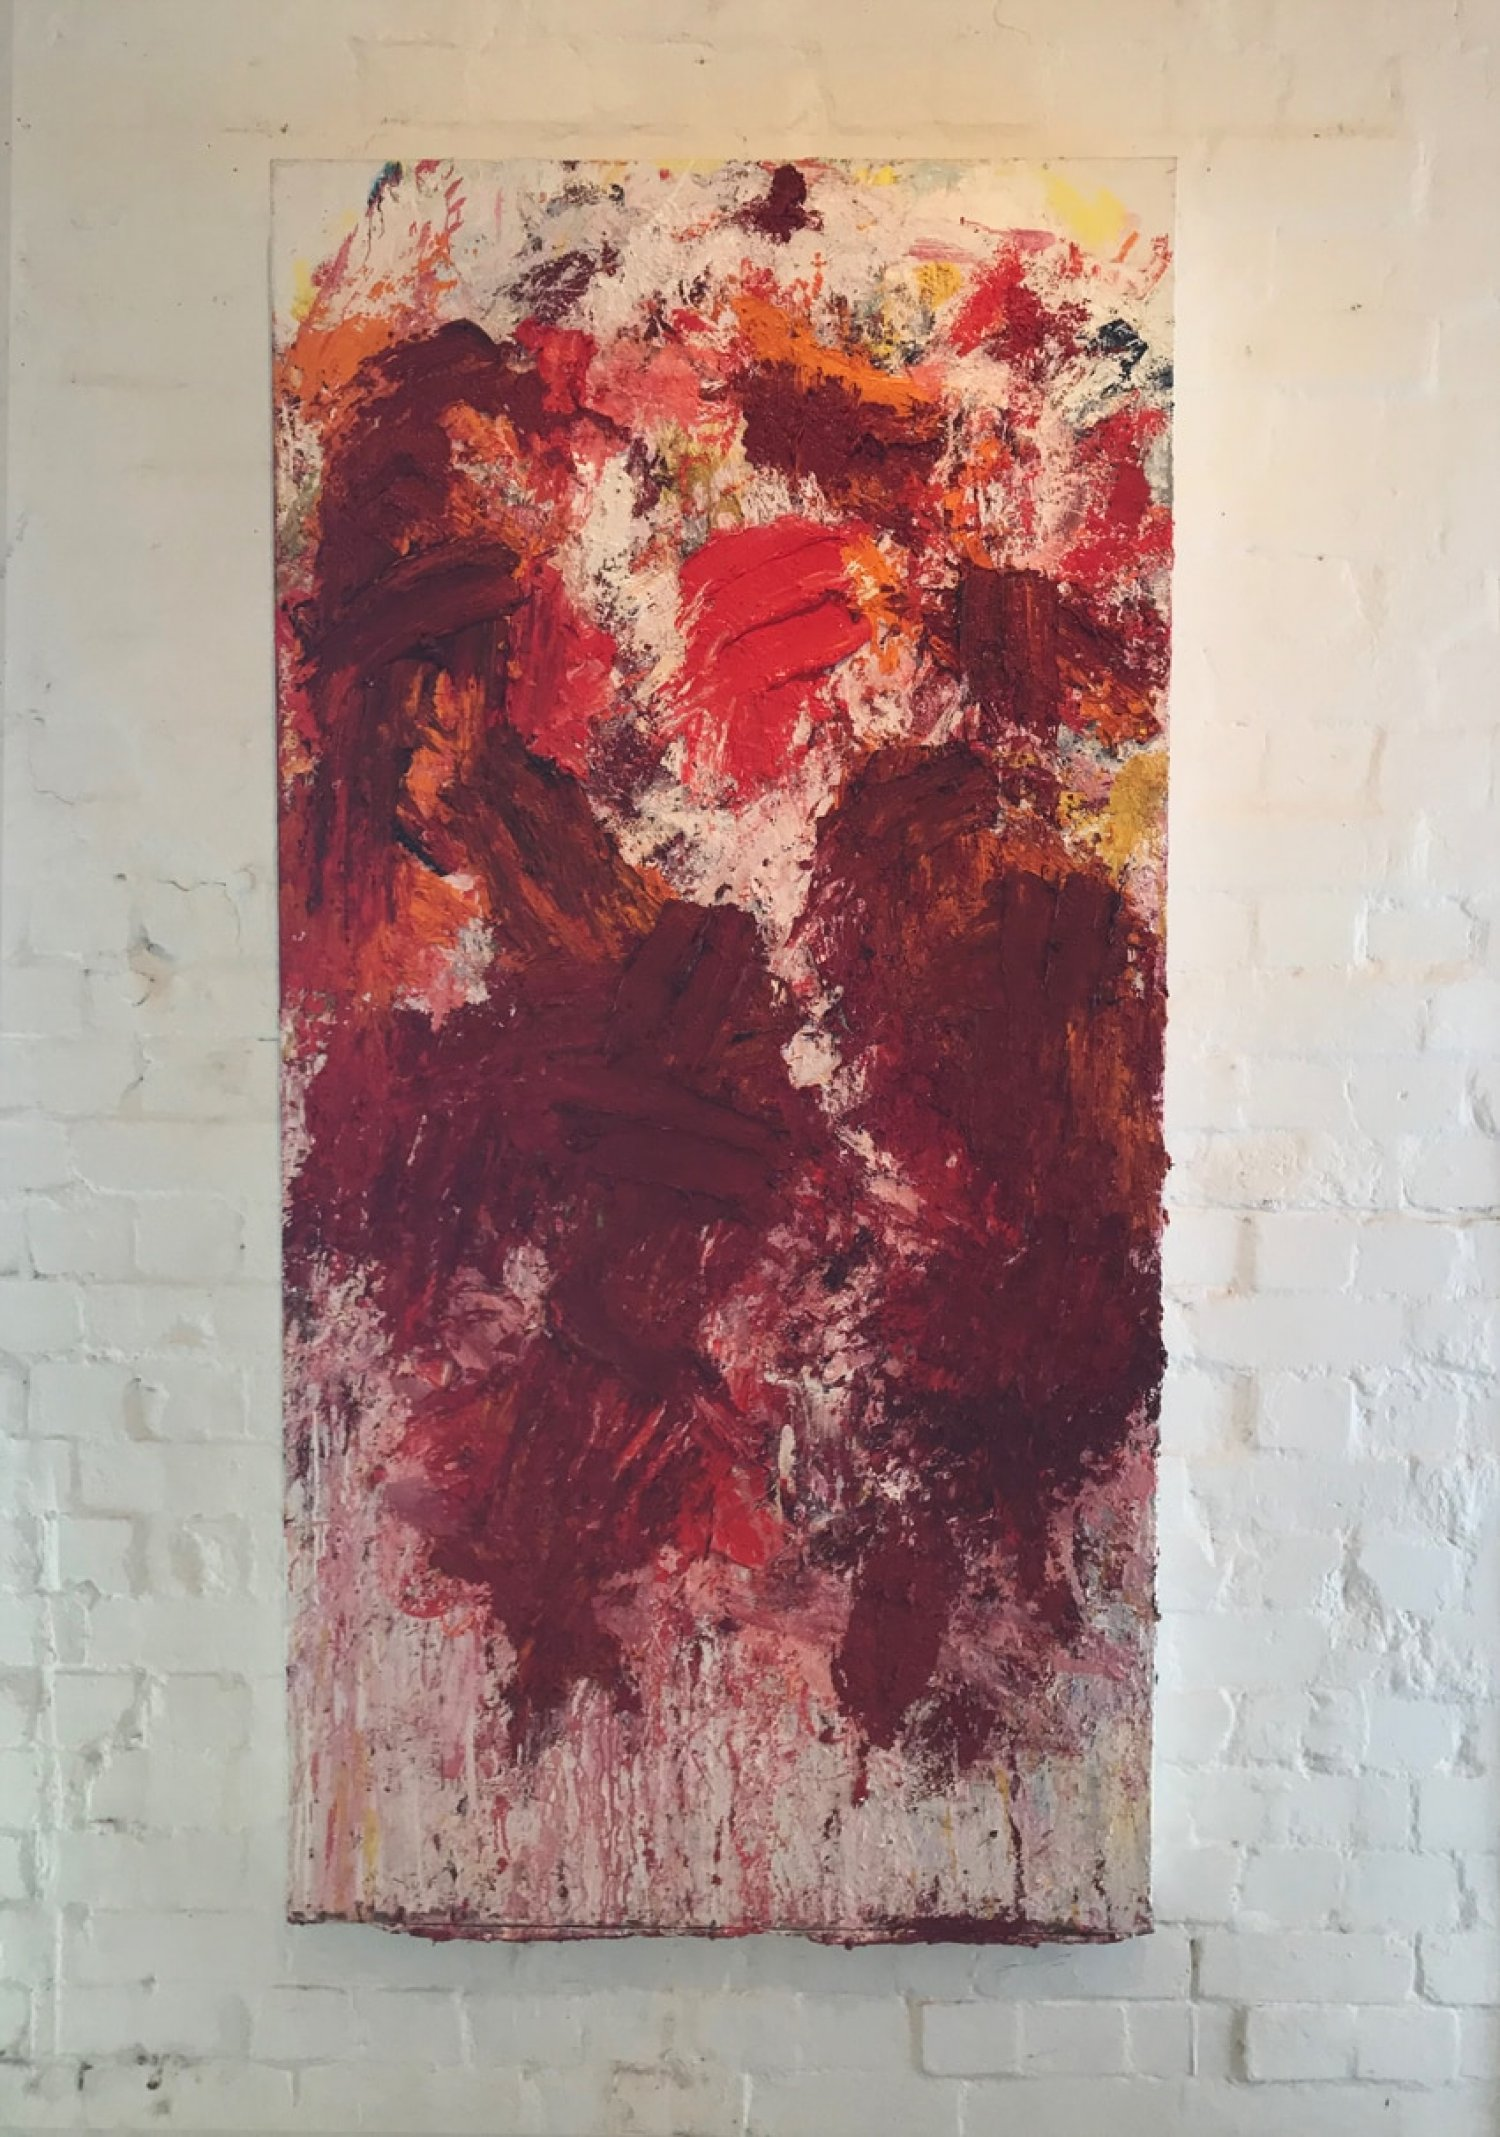 Aida Tomescu, In a carpet made of water, in a carpet made of earth I, 2017 oil, silver and gold pigment on Belgian linen, 183 x 91.5cm